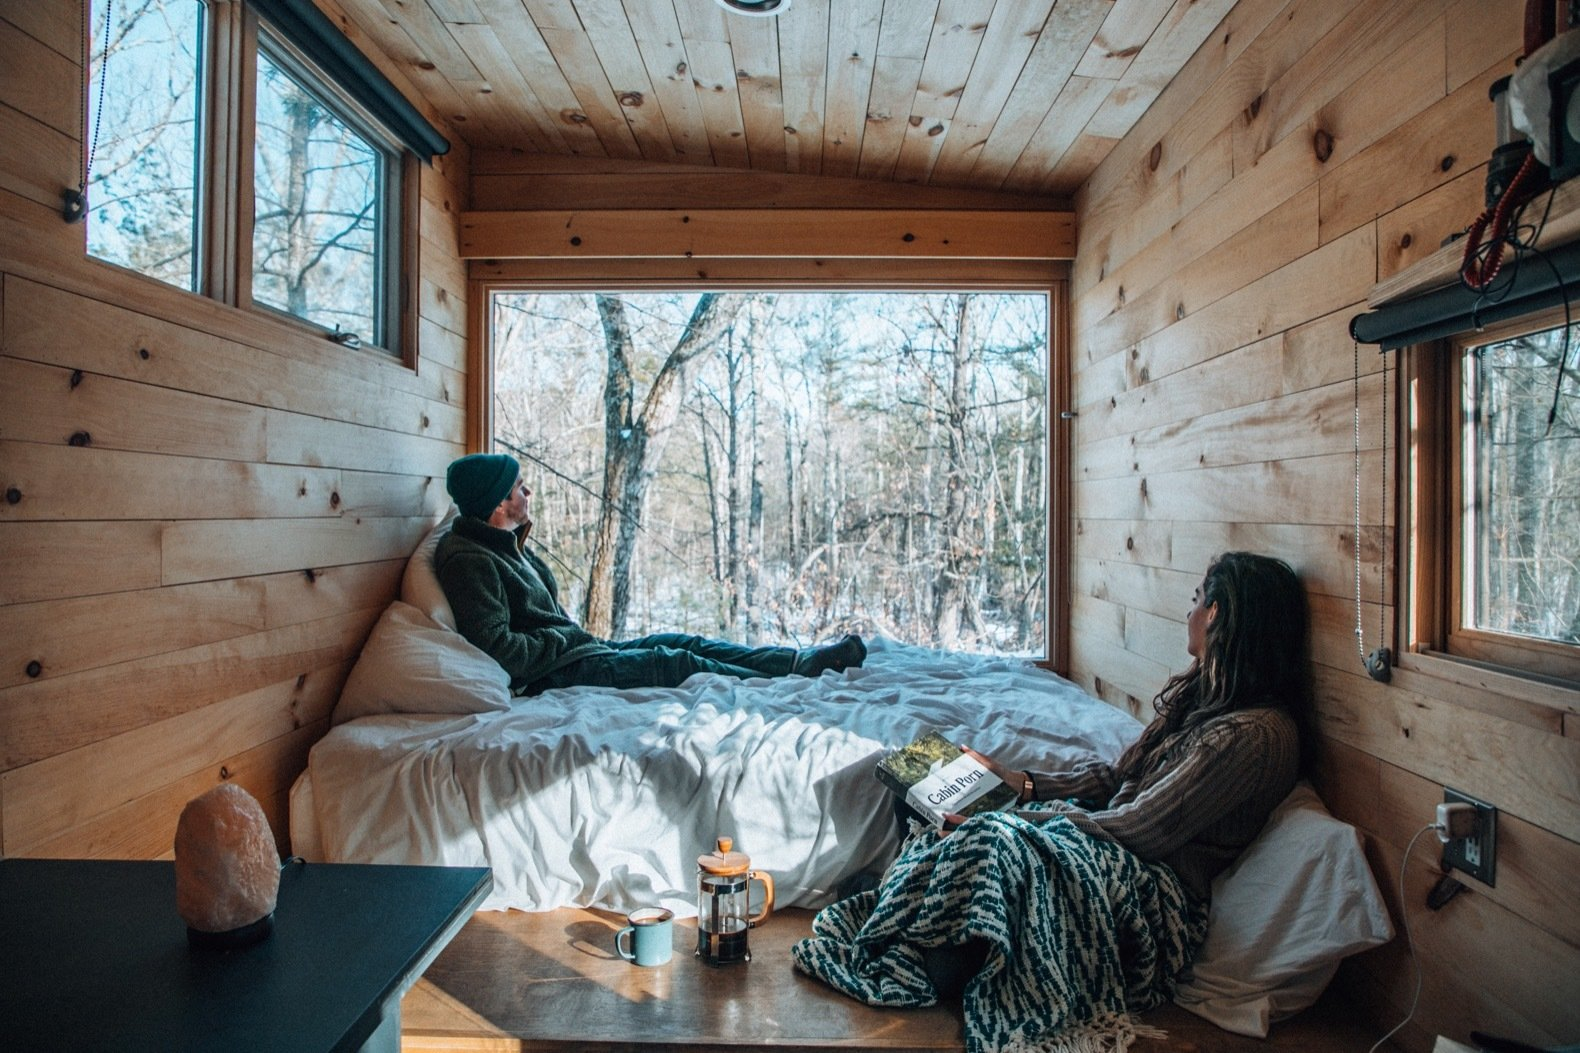 Bedroom, Bed, Ceiling Lighting, and Medium Hardwood Floor The tiny cabins range between 140 and 200 square feet in size.  Photo 8 of 9 in Rediscover the Pleasure of Solitude in These Micro Cabins Across the East Coast